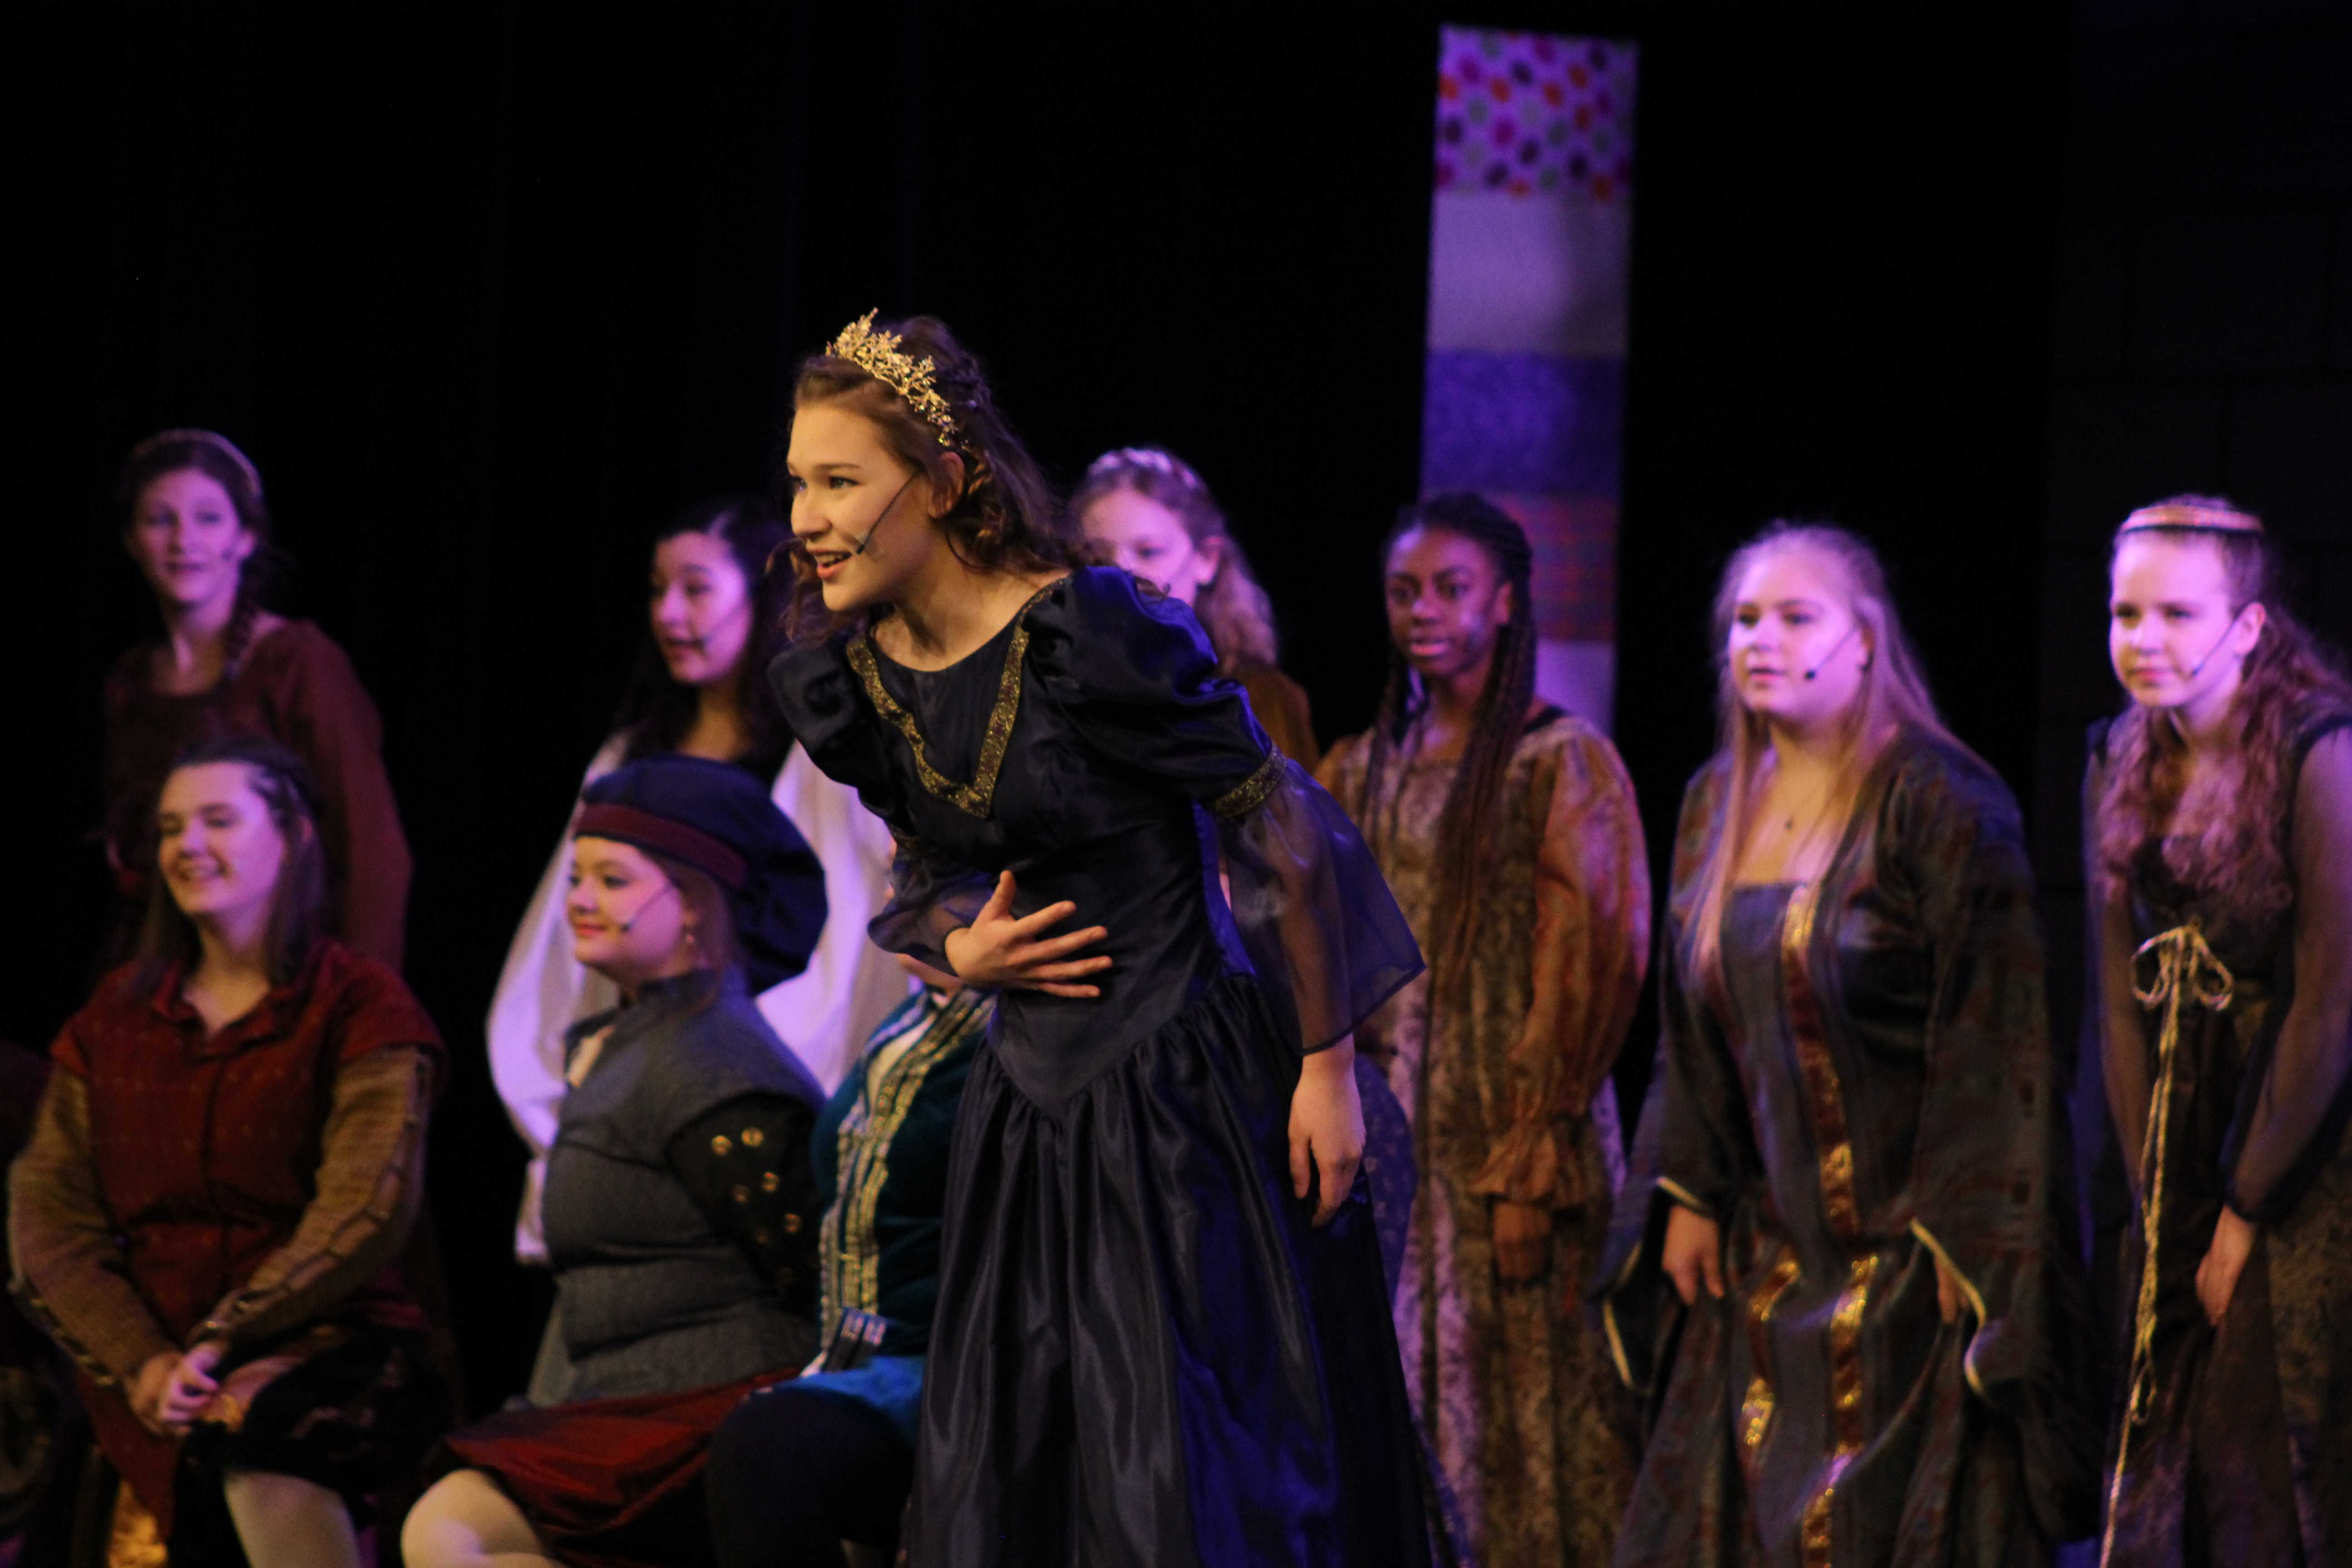 Princess Winnifred (played by senior Anna Skala) making eye contact with the audience as she is acting. (K. Troy)